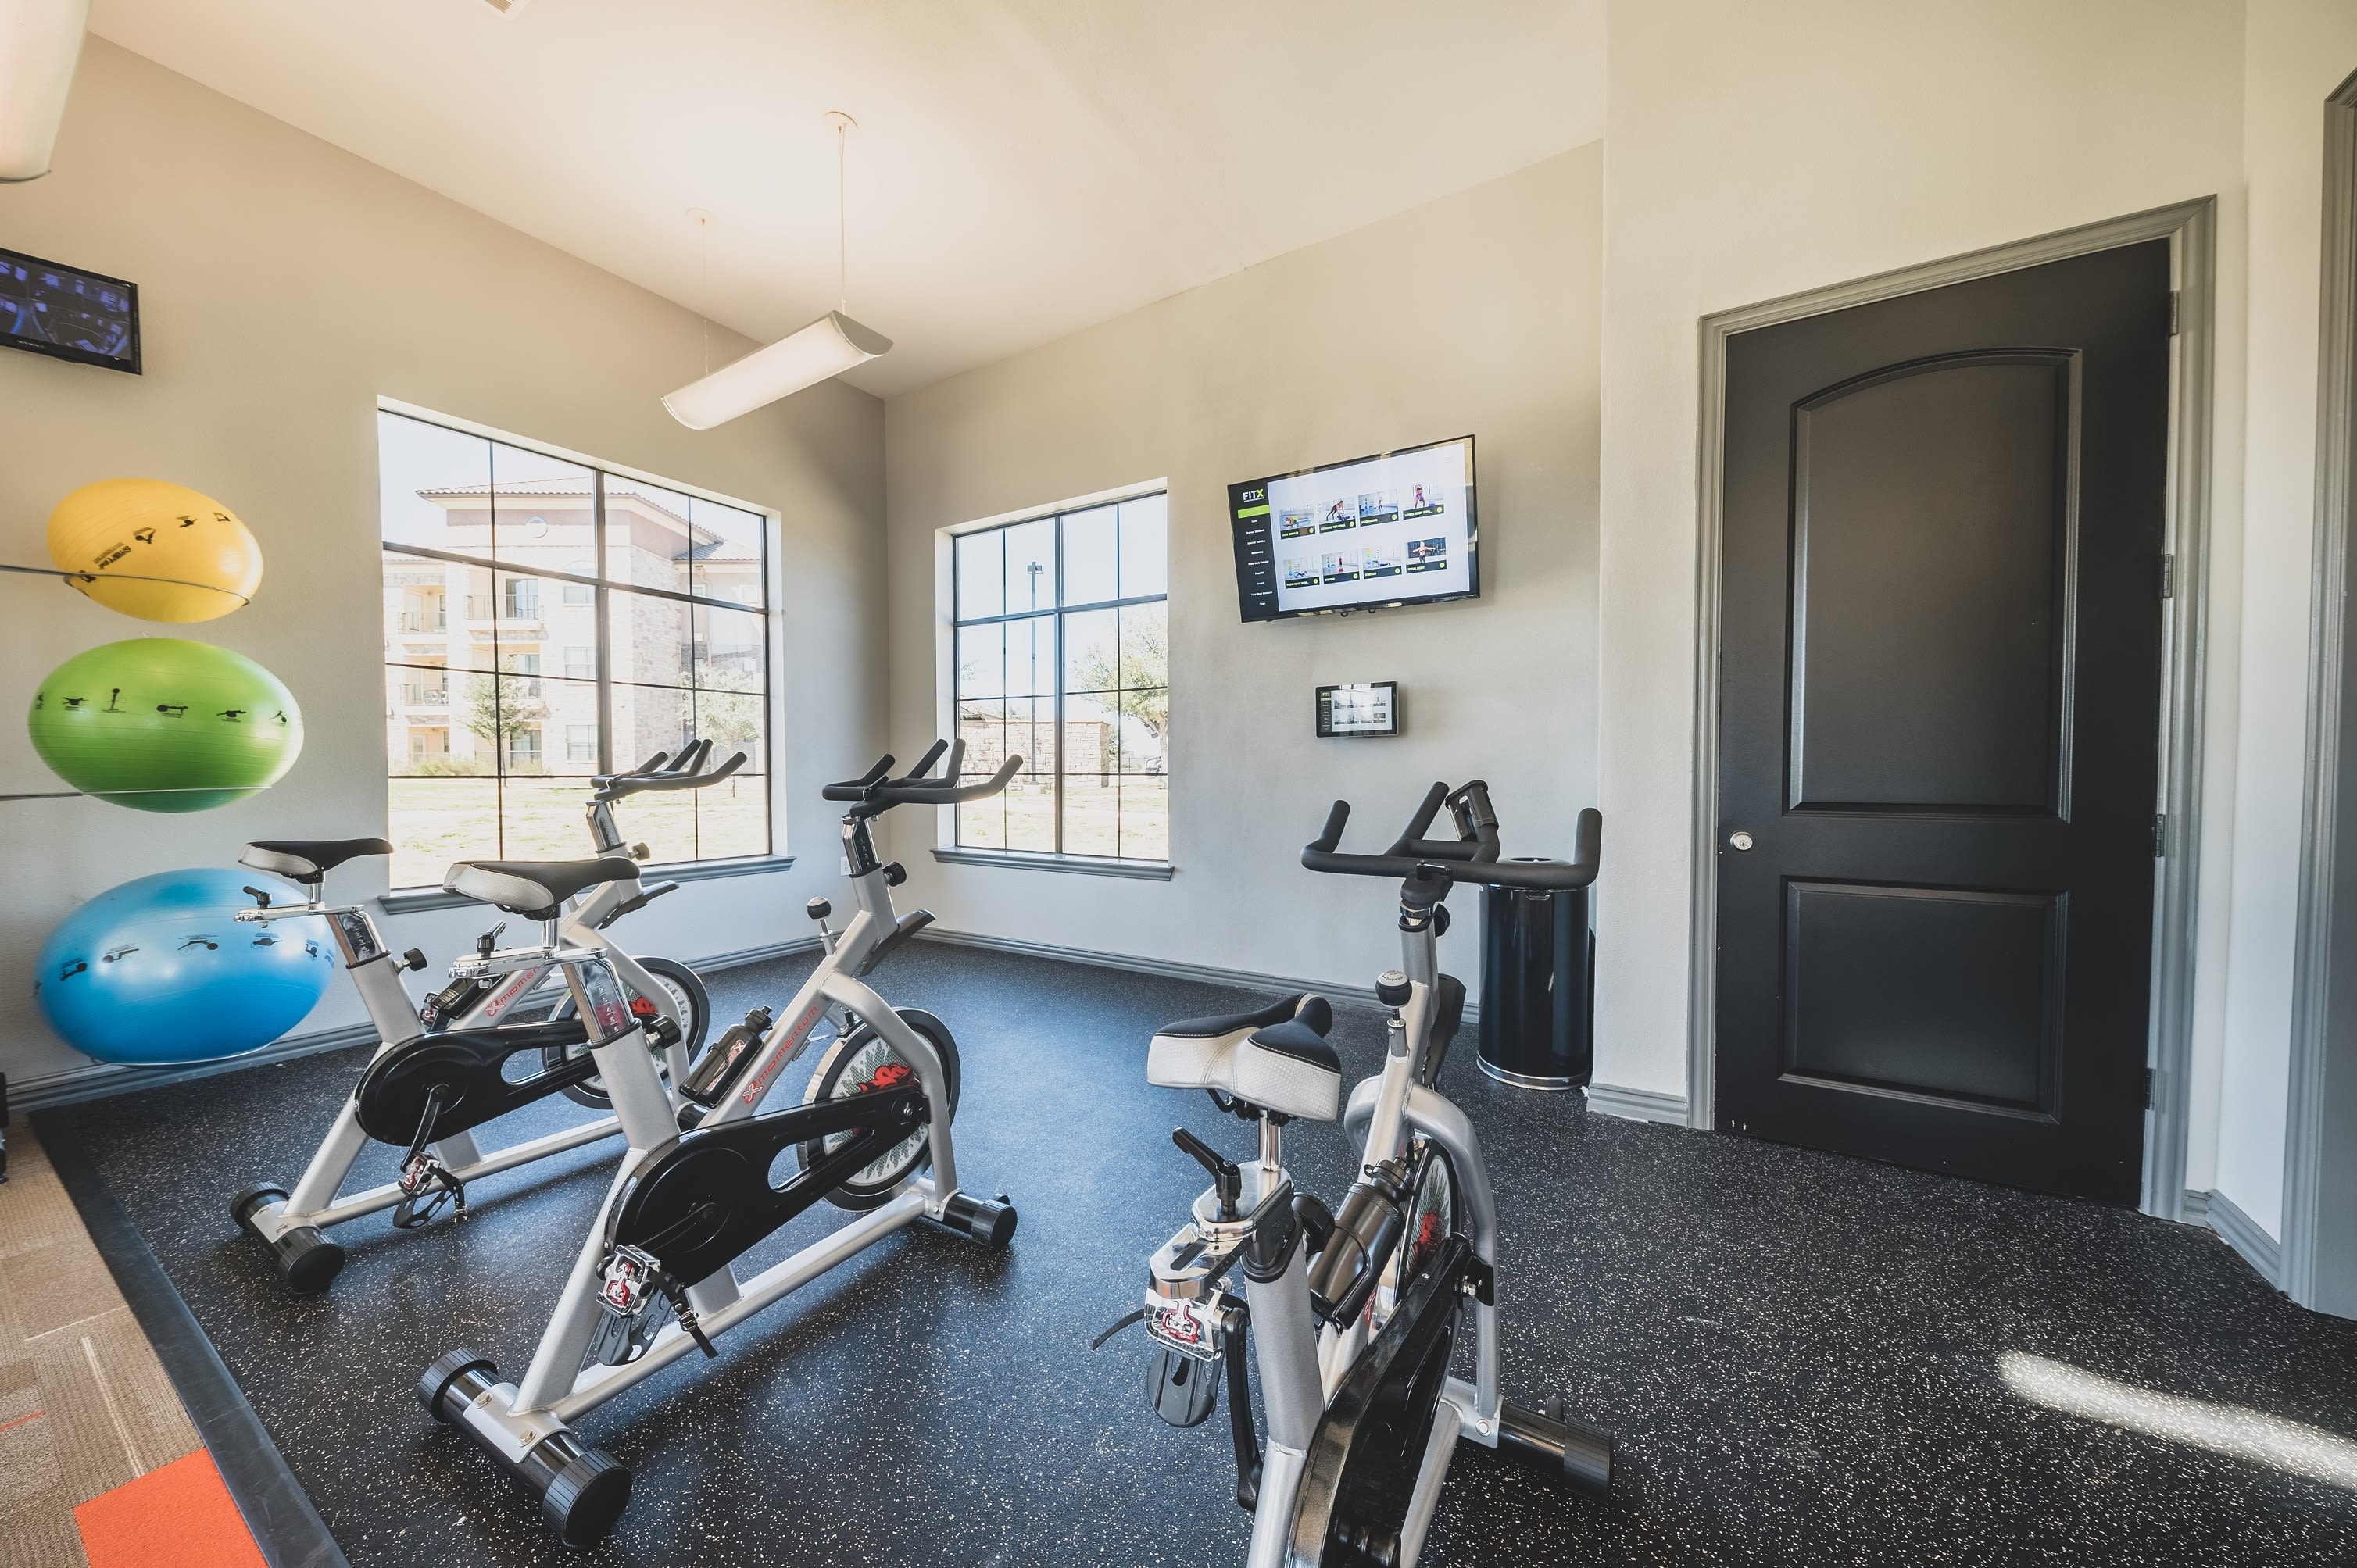 Fitness center at Evolv in Mansfield, Texas